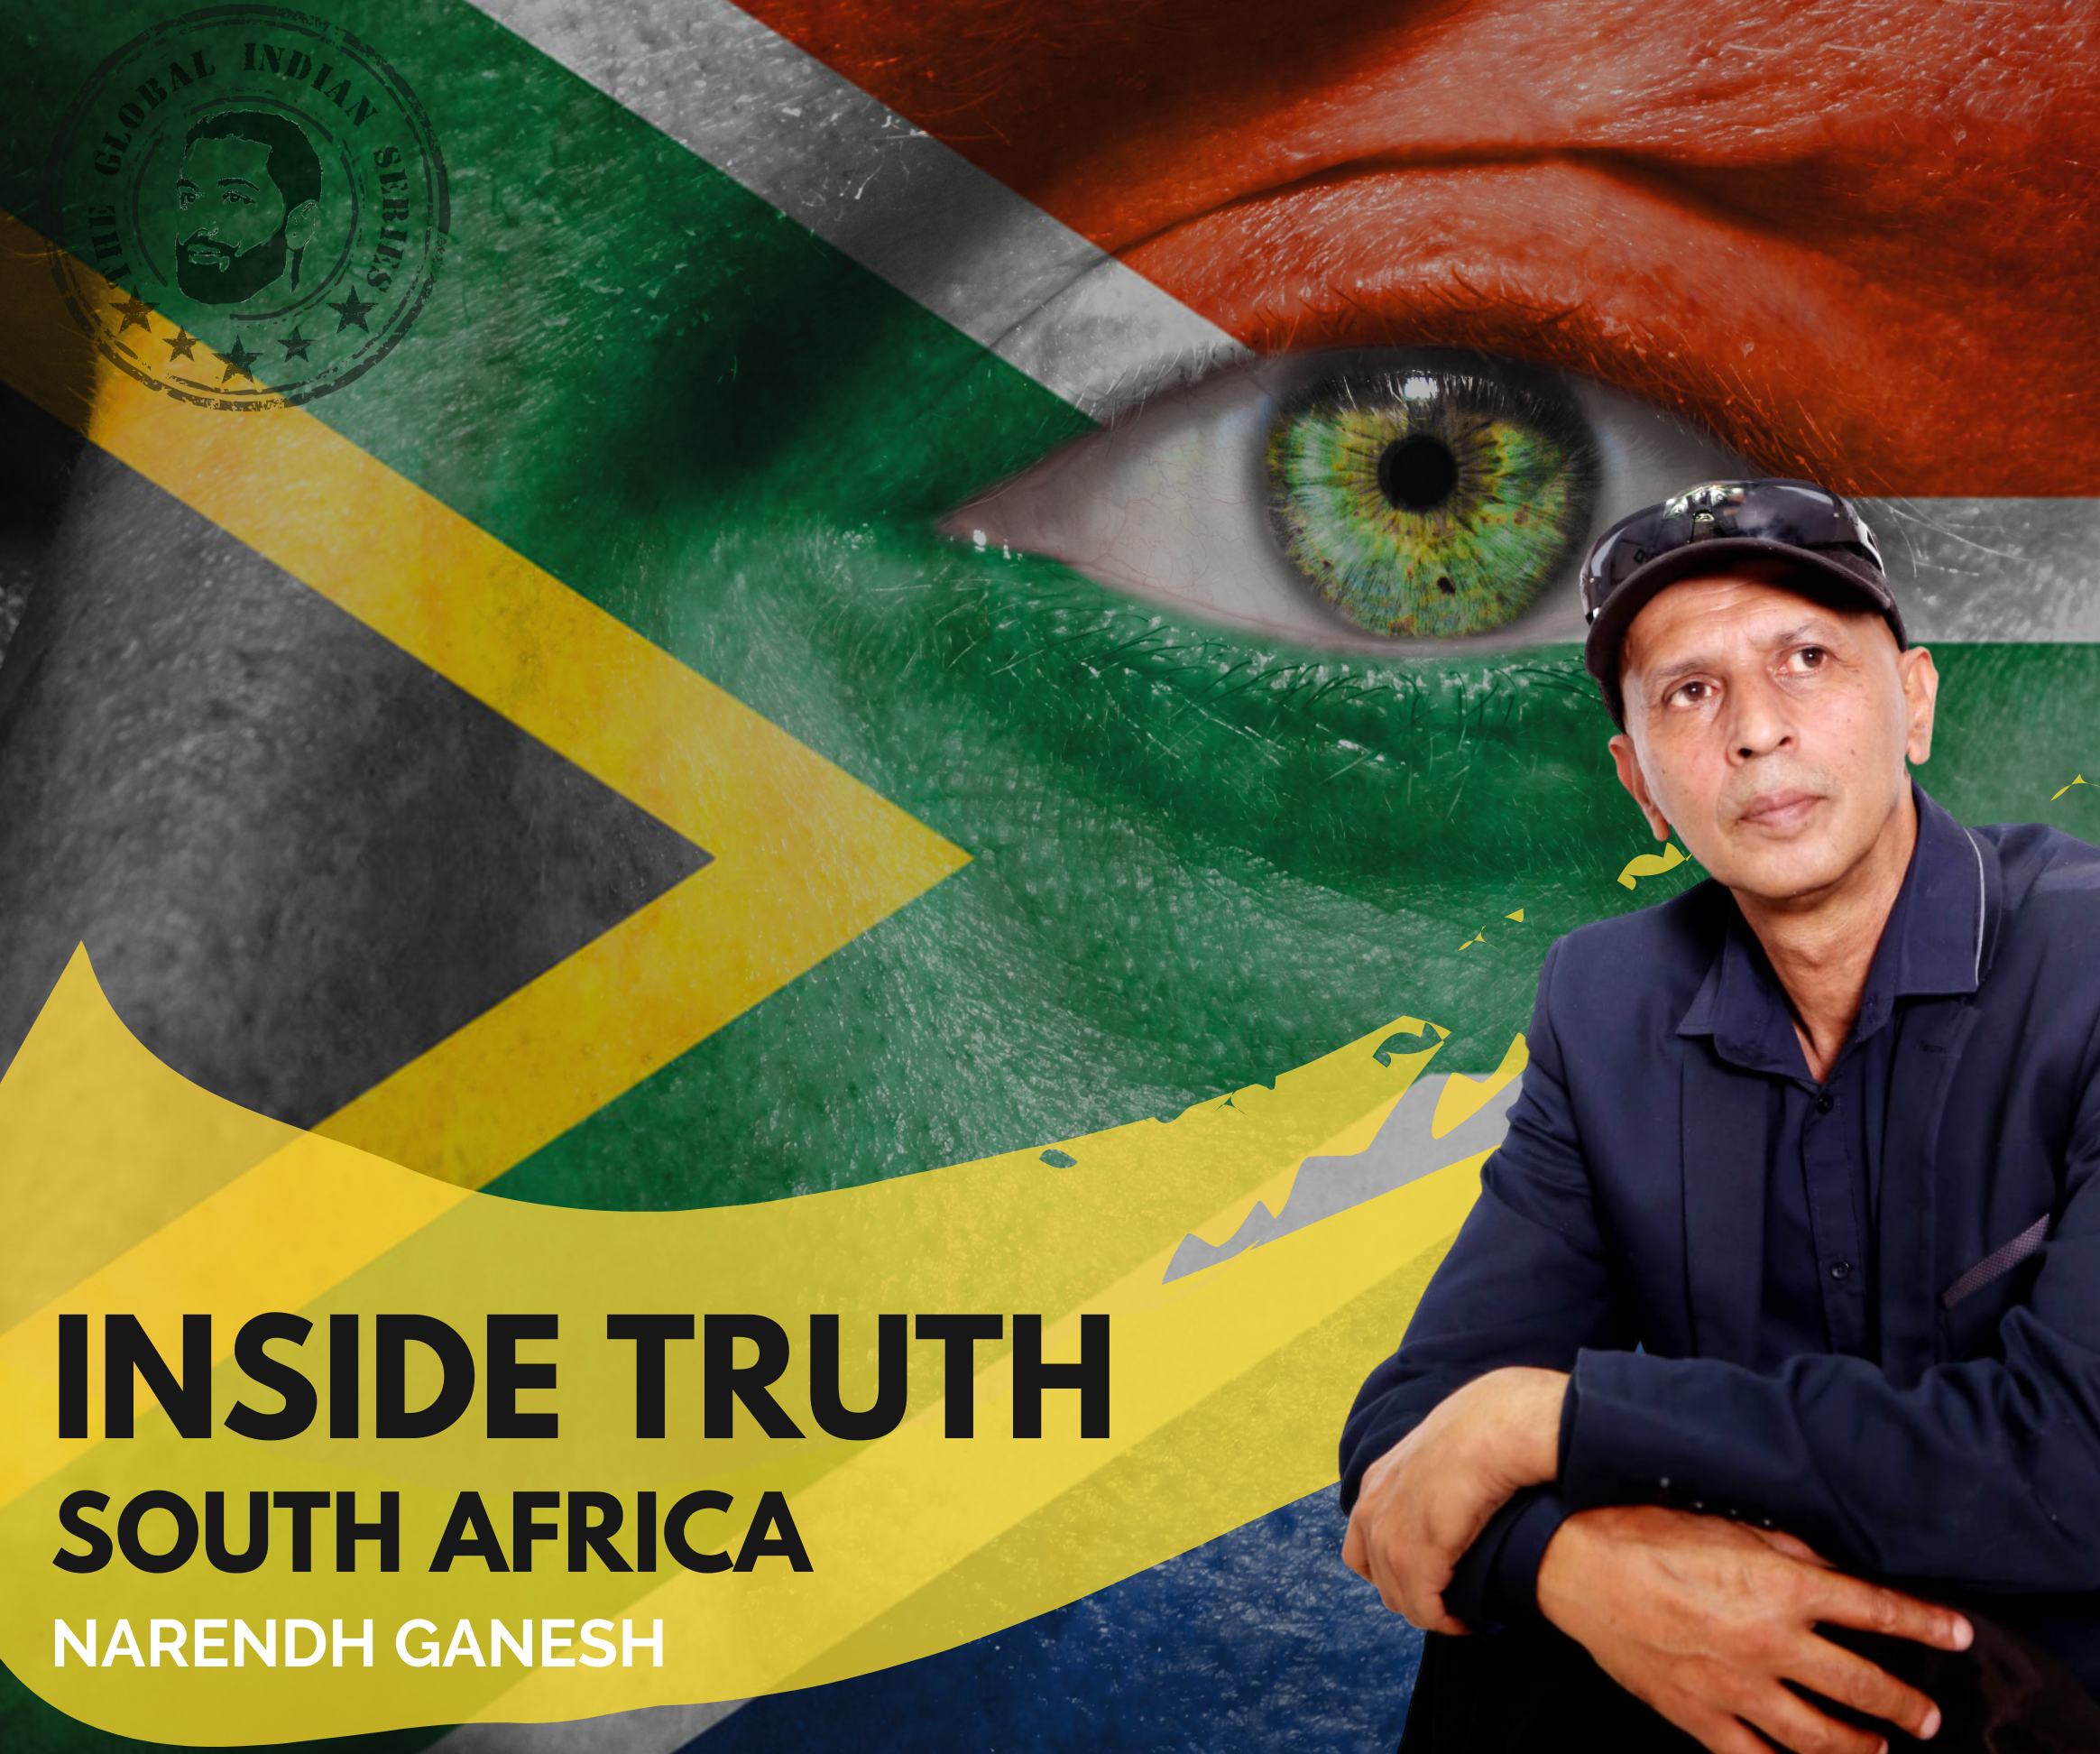 Global Indian Correspondent Narendh Ganesh takes us on the inside journey to the truth behind South Africa